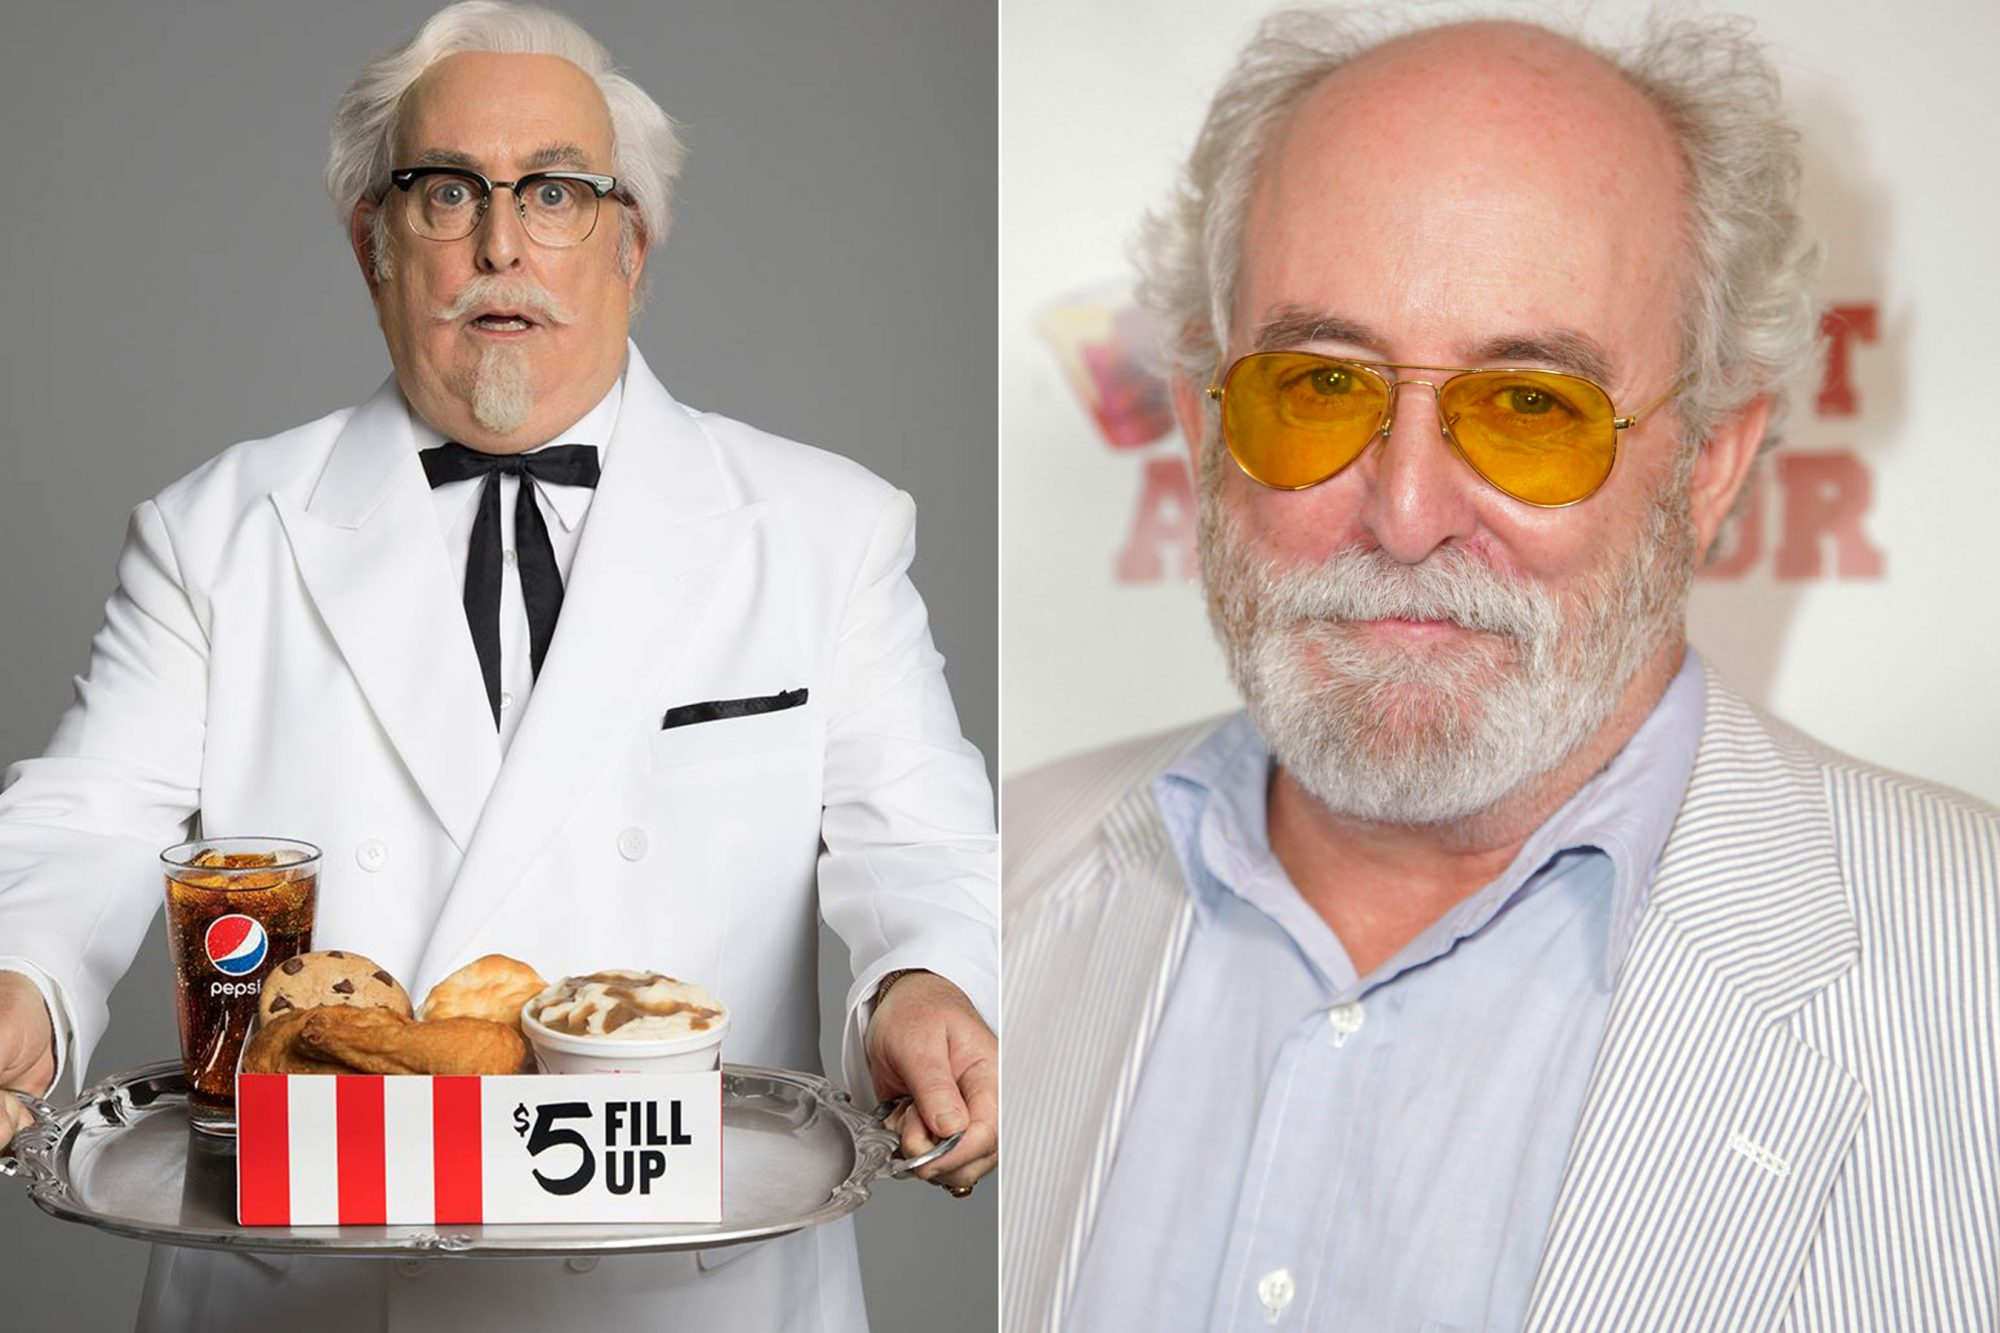 Colonel Sanders Actor In Christmas Commercial 2020 KFC commercials: Every person who's played Colonel Sanders | EW.com